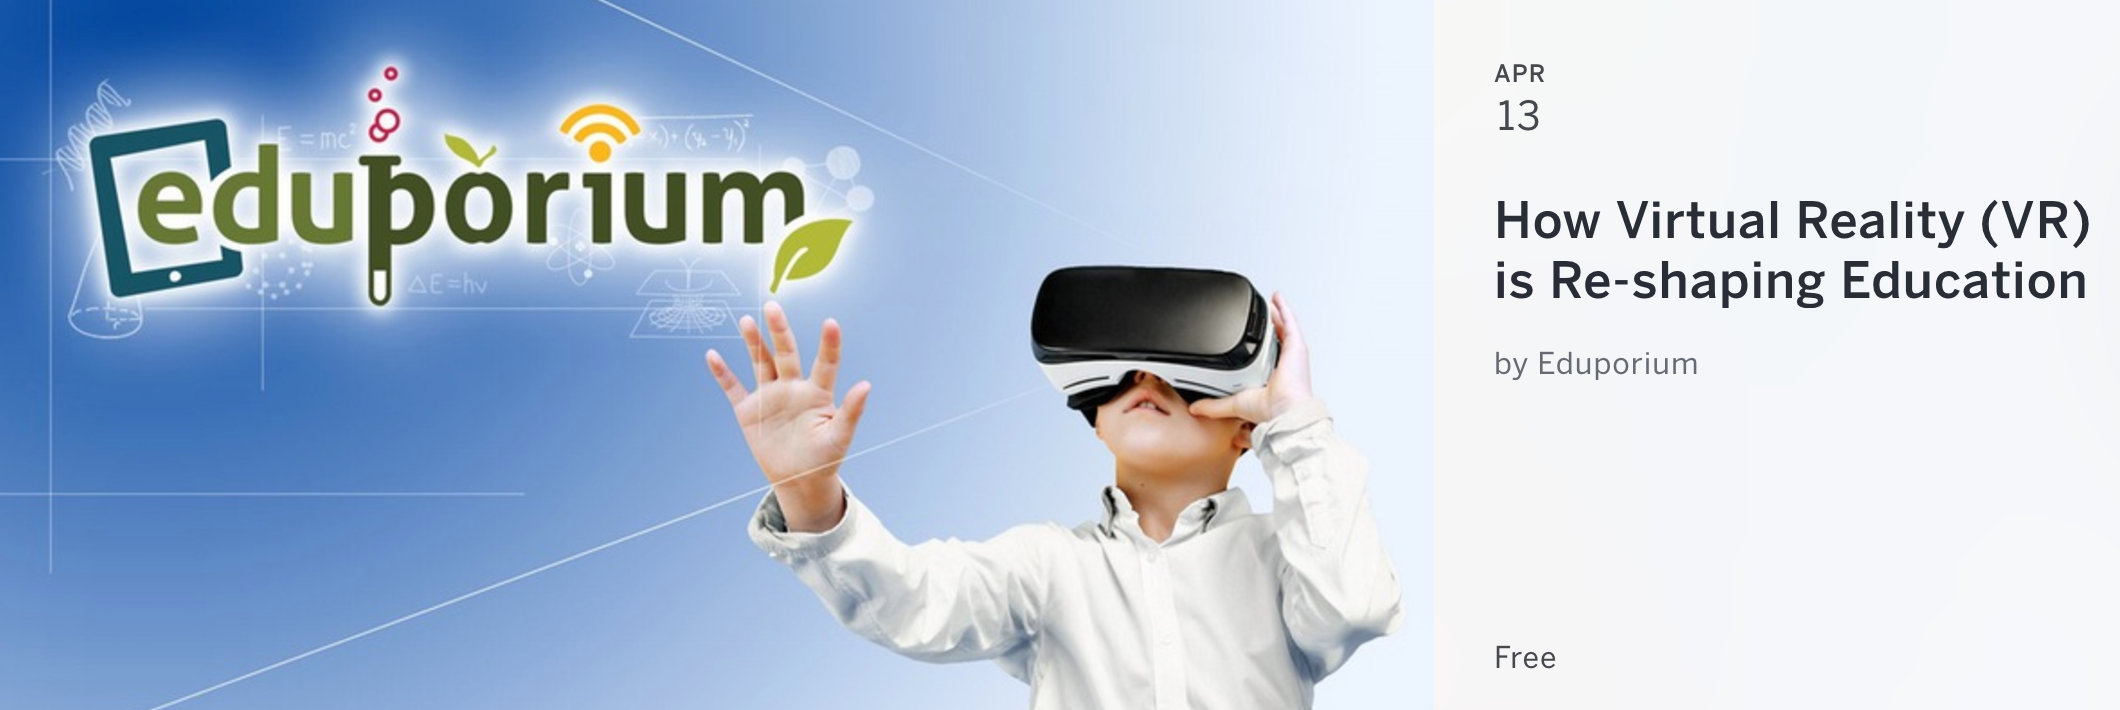 Sign up and join the event: https://www.eventbrite.com/e/how-virtual-reality-vr-is-re-shaping-education-tickets-33051731619